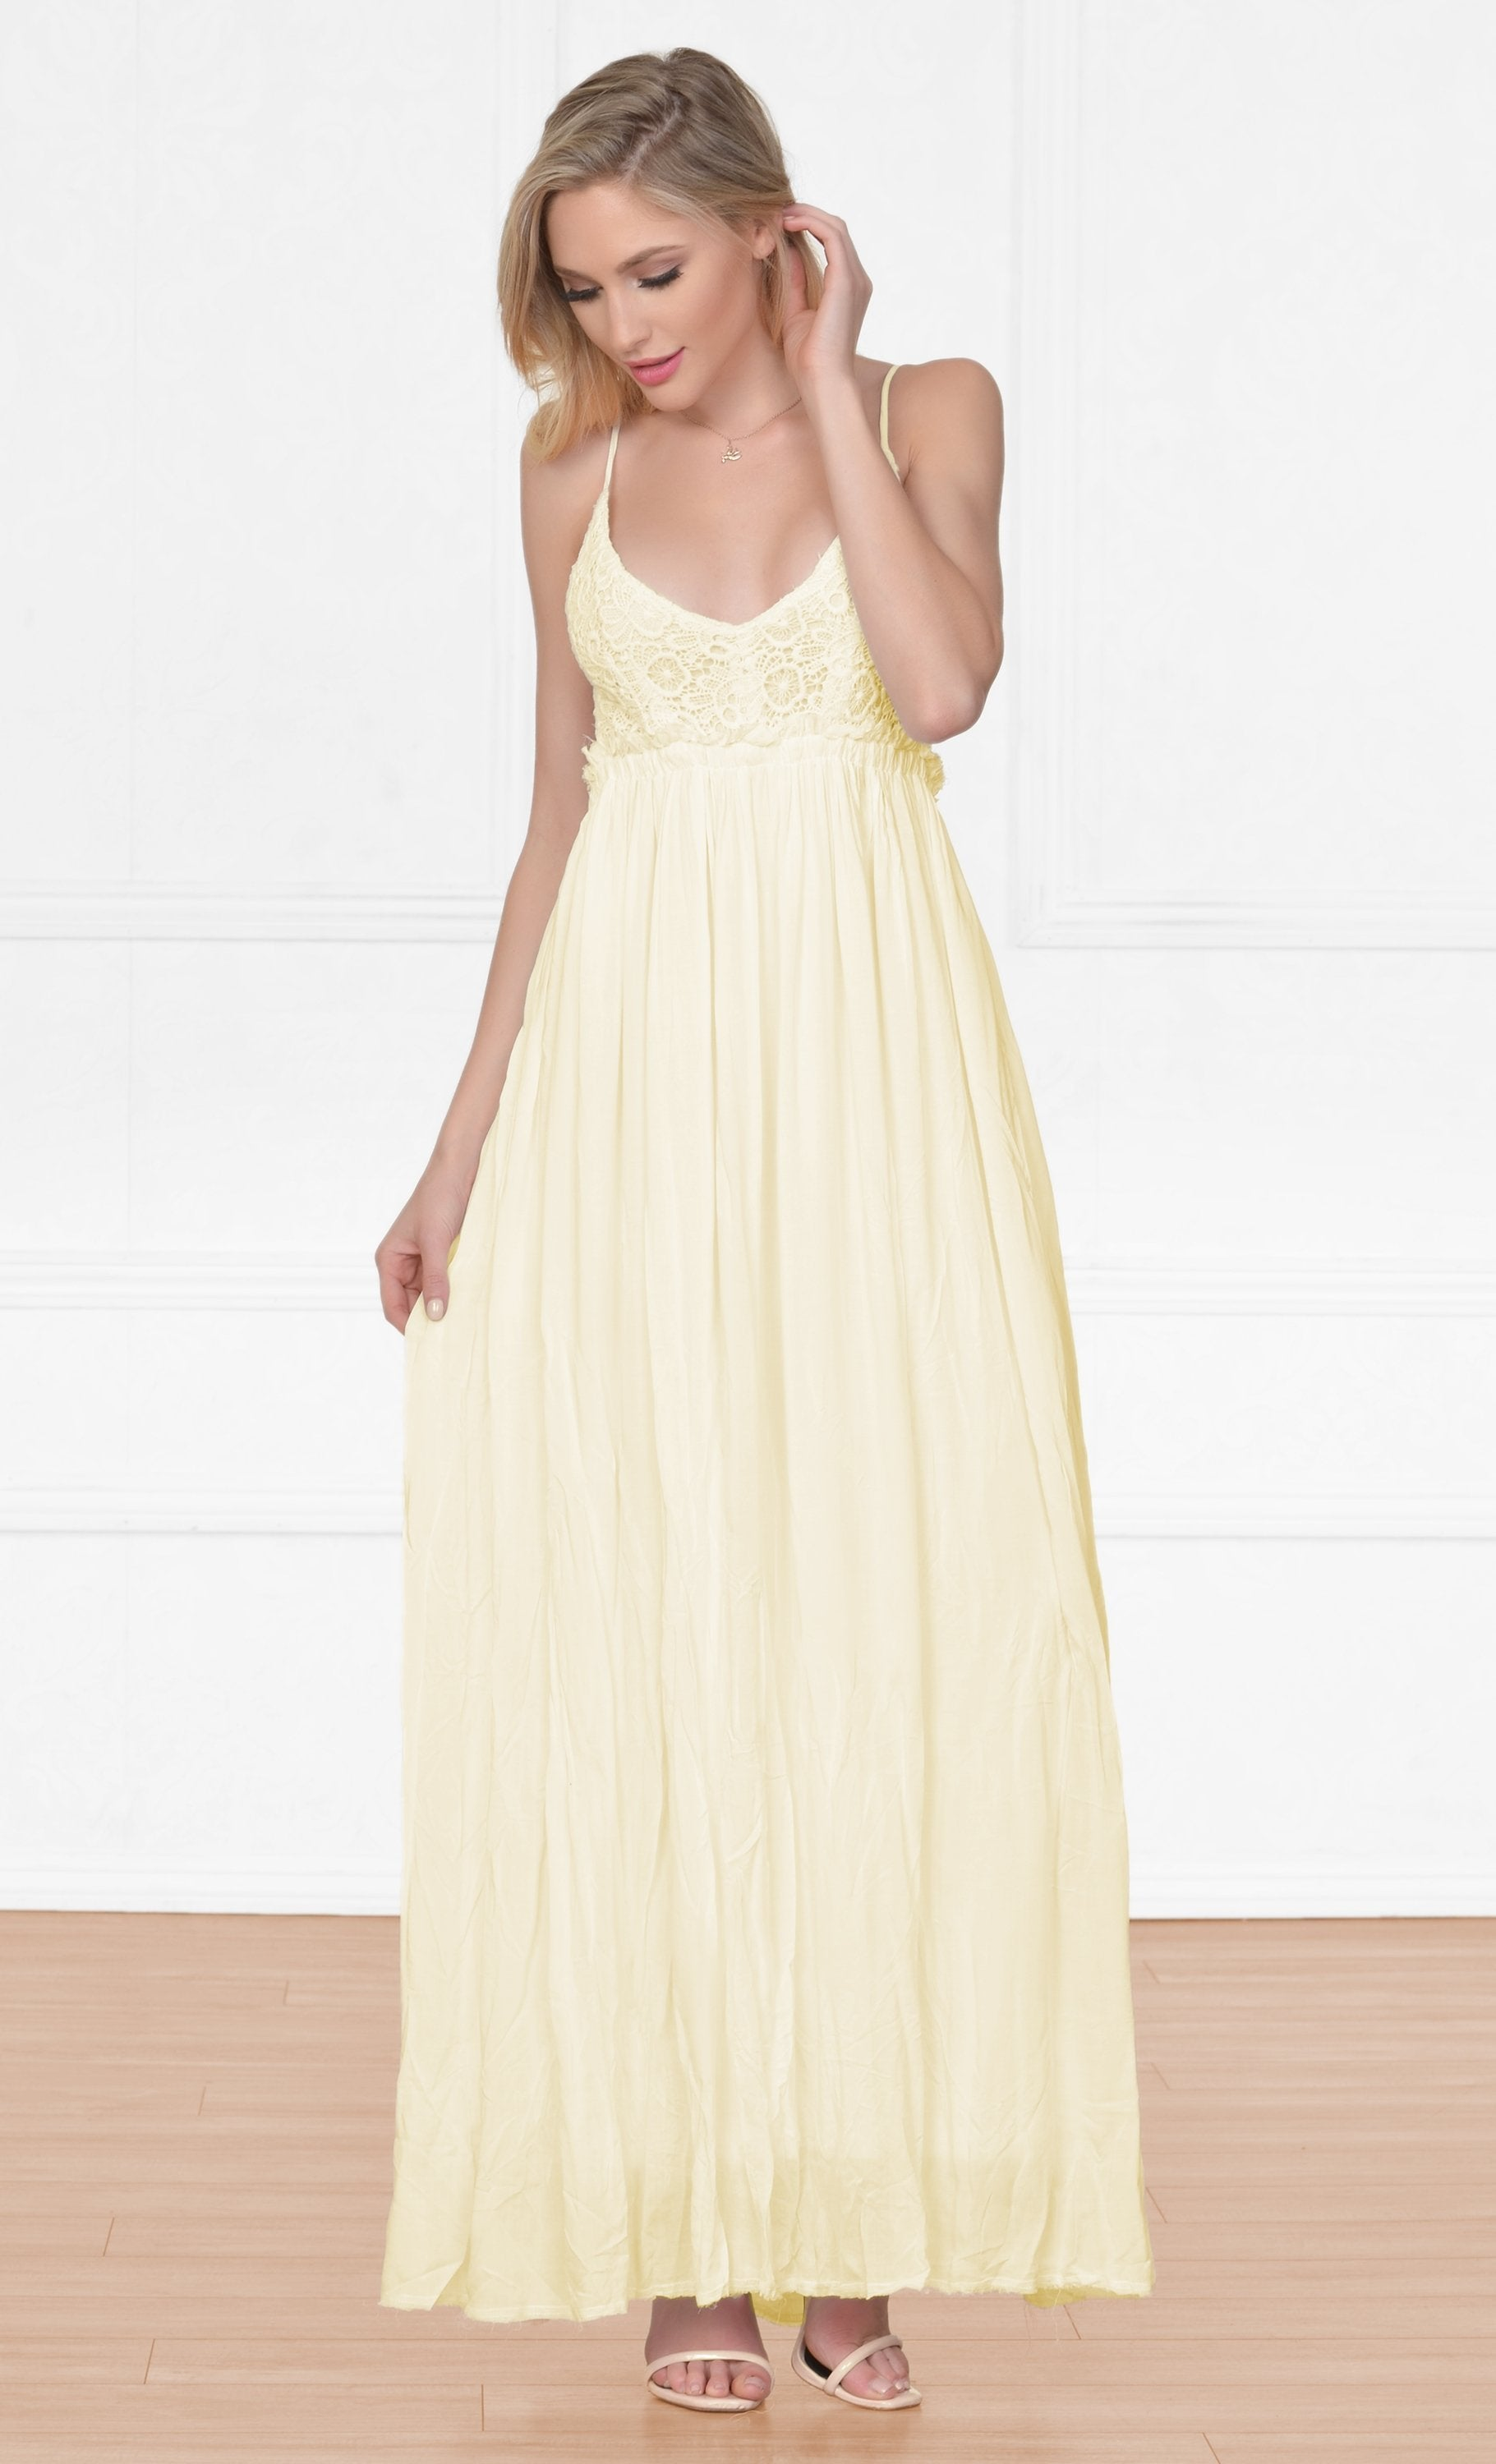 Indie XO Gentle Breeze Pastel Yellow Crochet V Neck Sleeveless Top Full Length Flowy Wrinkle Accent Maxi Dress - Sold Out